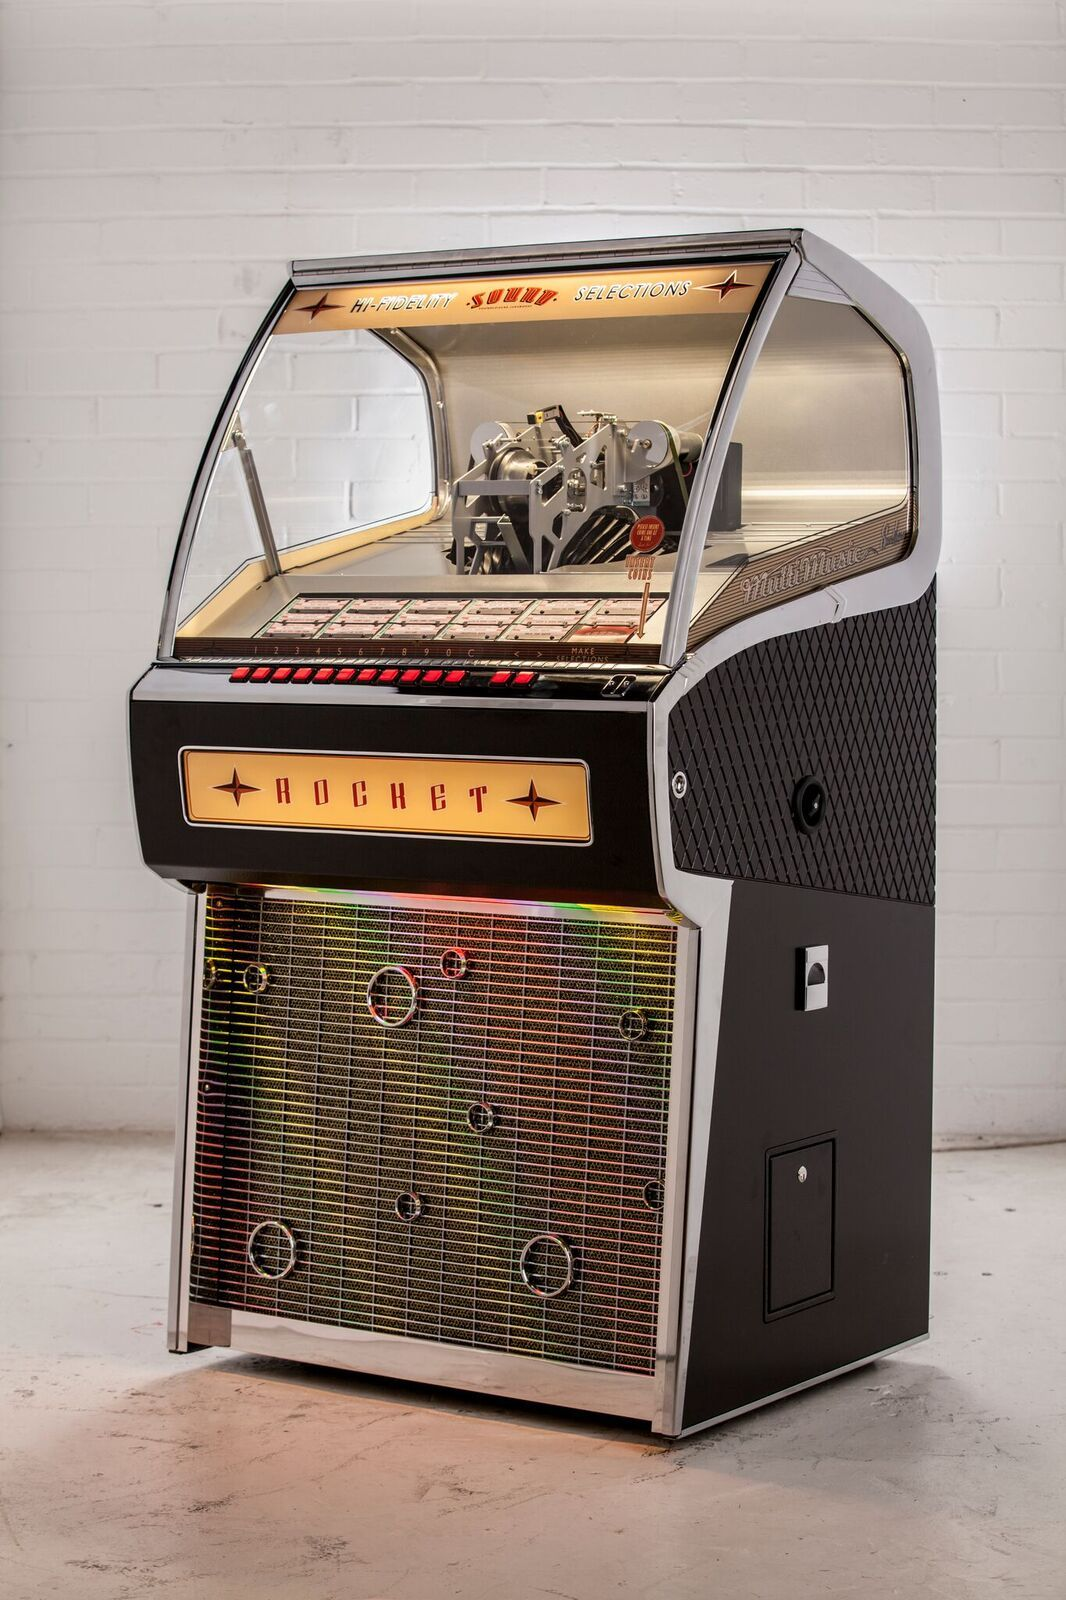 The First Vinyl Jukebox to Be Made in 20 Years Will Soon Be on Sale